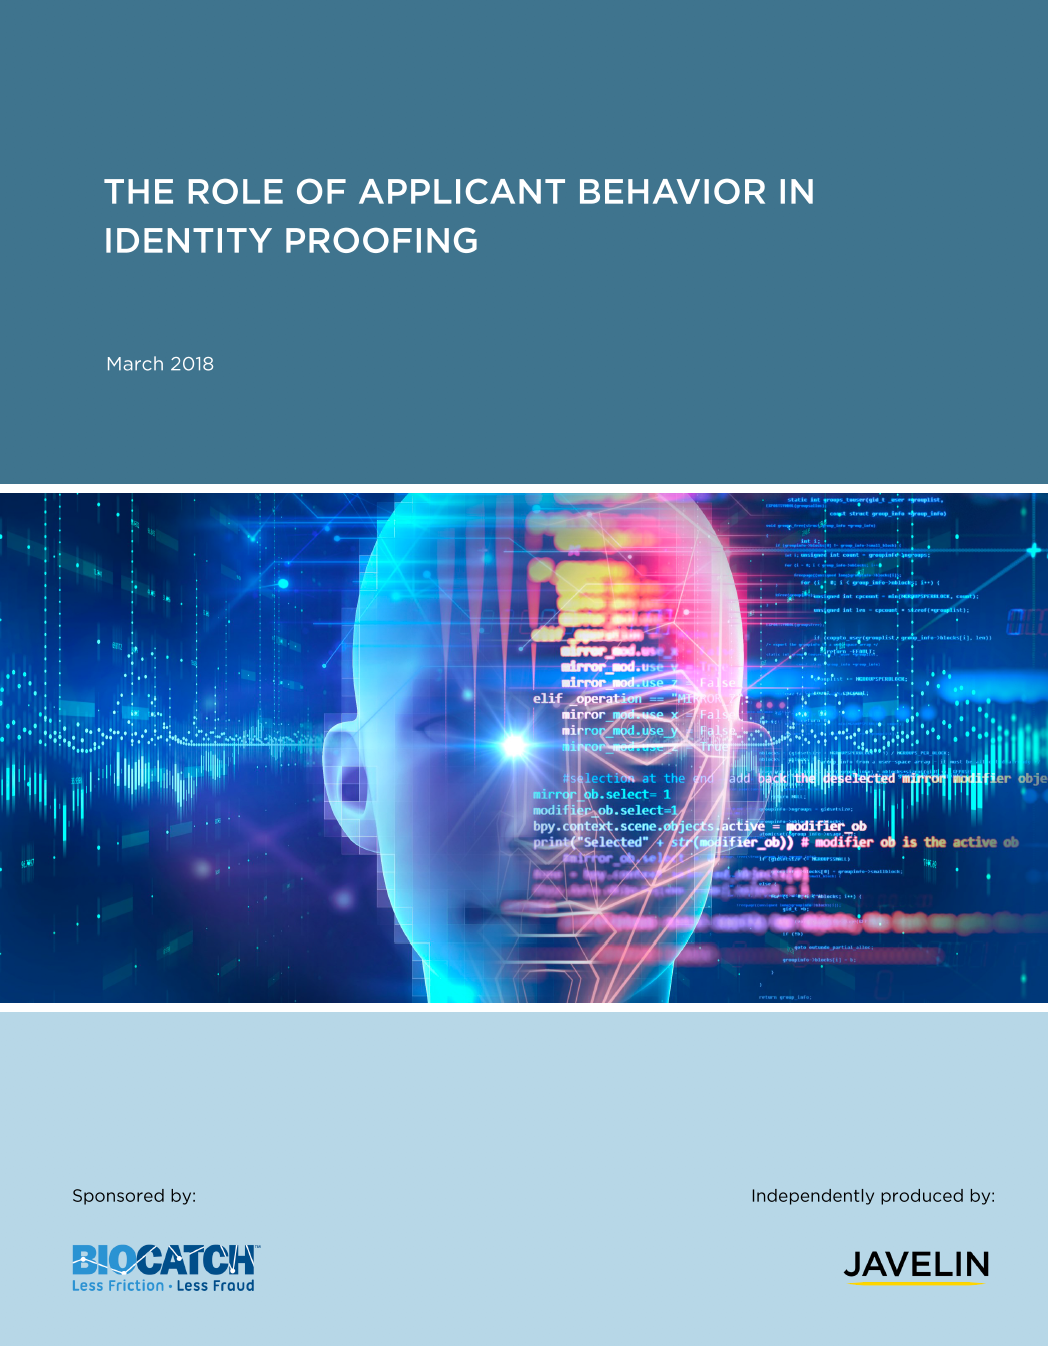 Managing the Risk of Application Fraud with Behavior-Based Identity Proofing